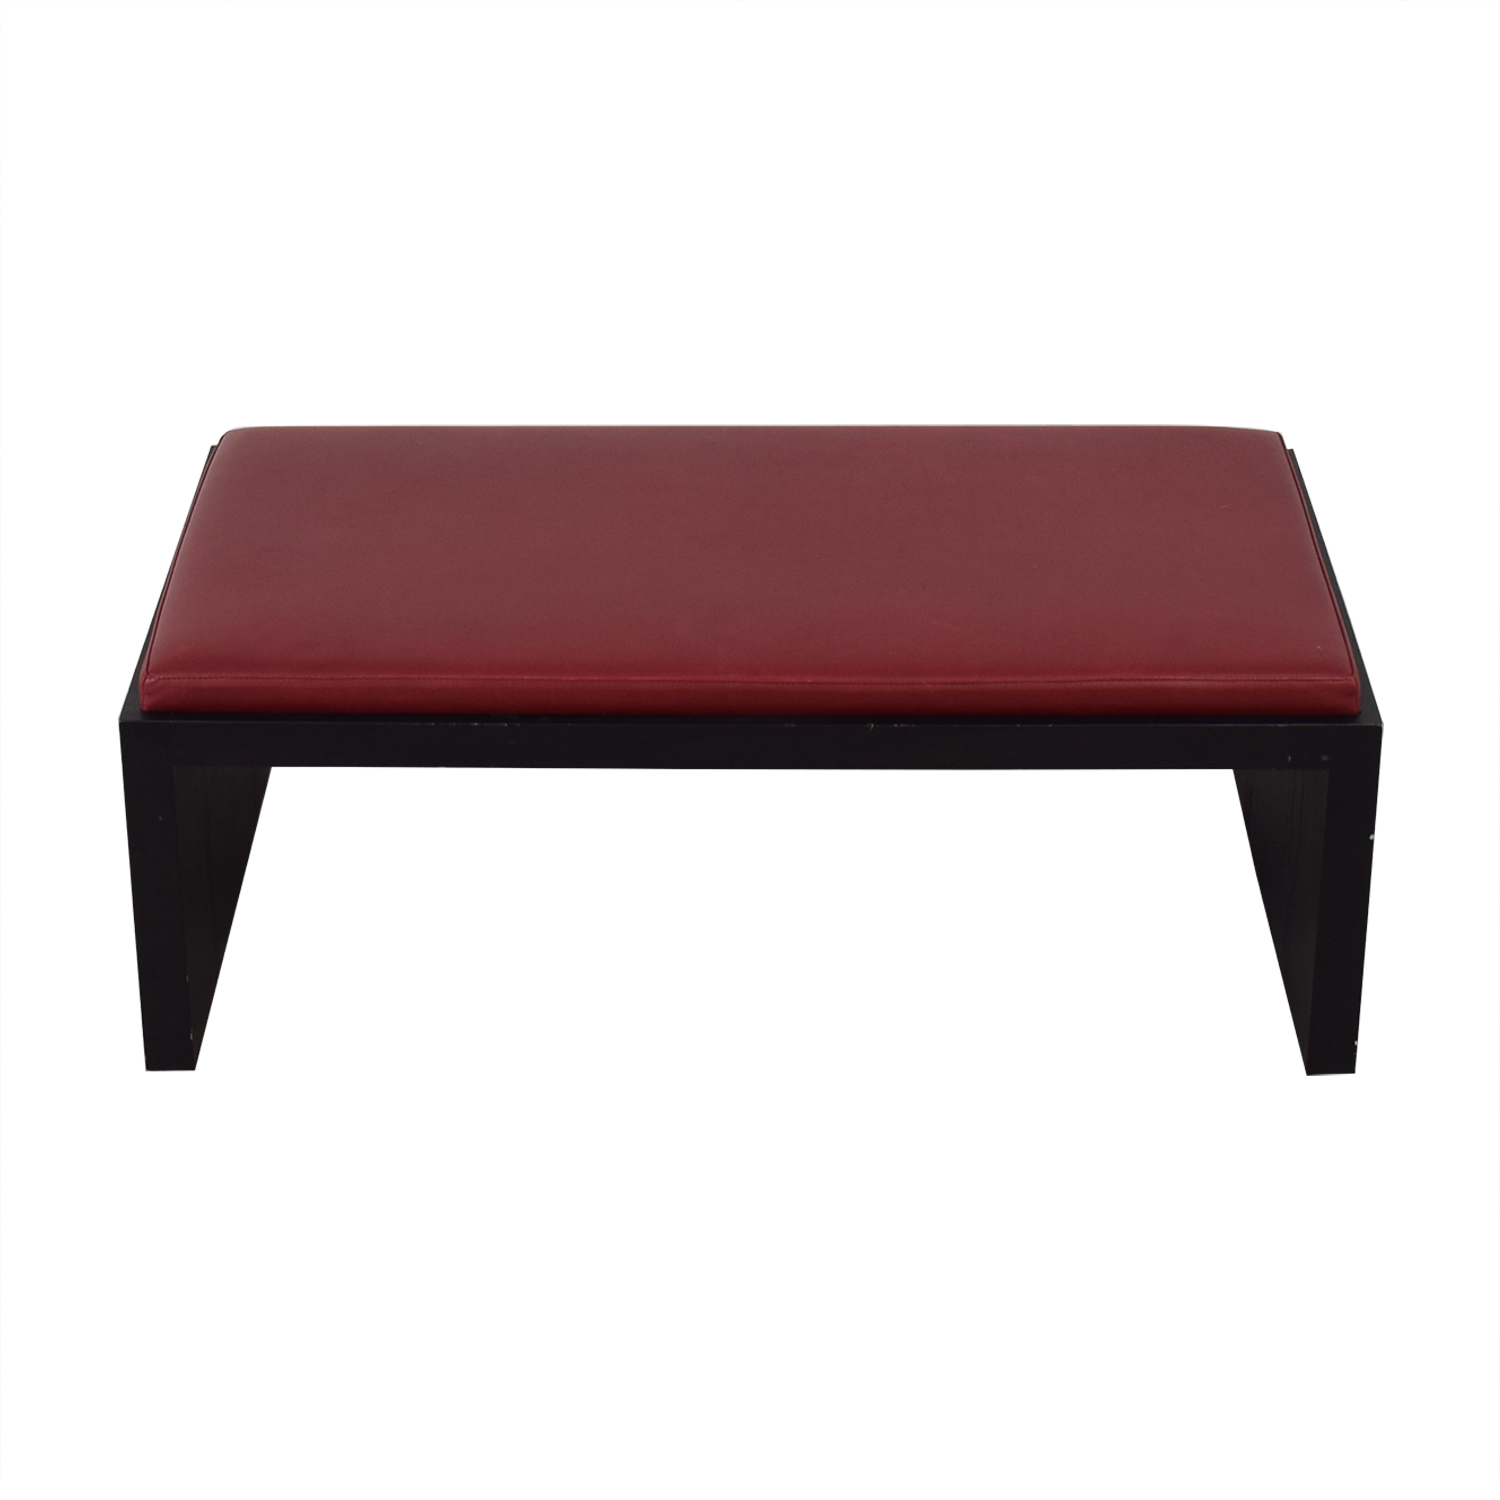 Wood and Leather Bench Coffee Table on sale